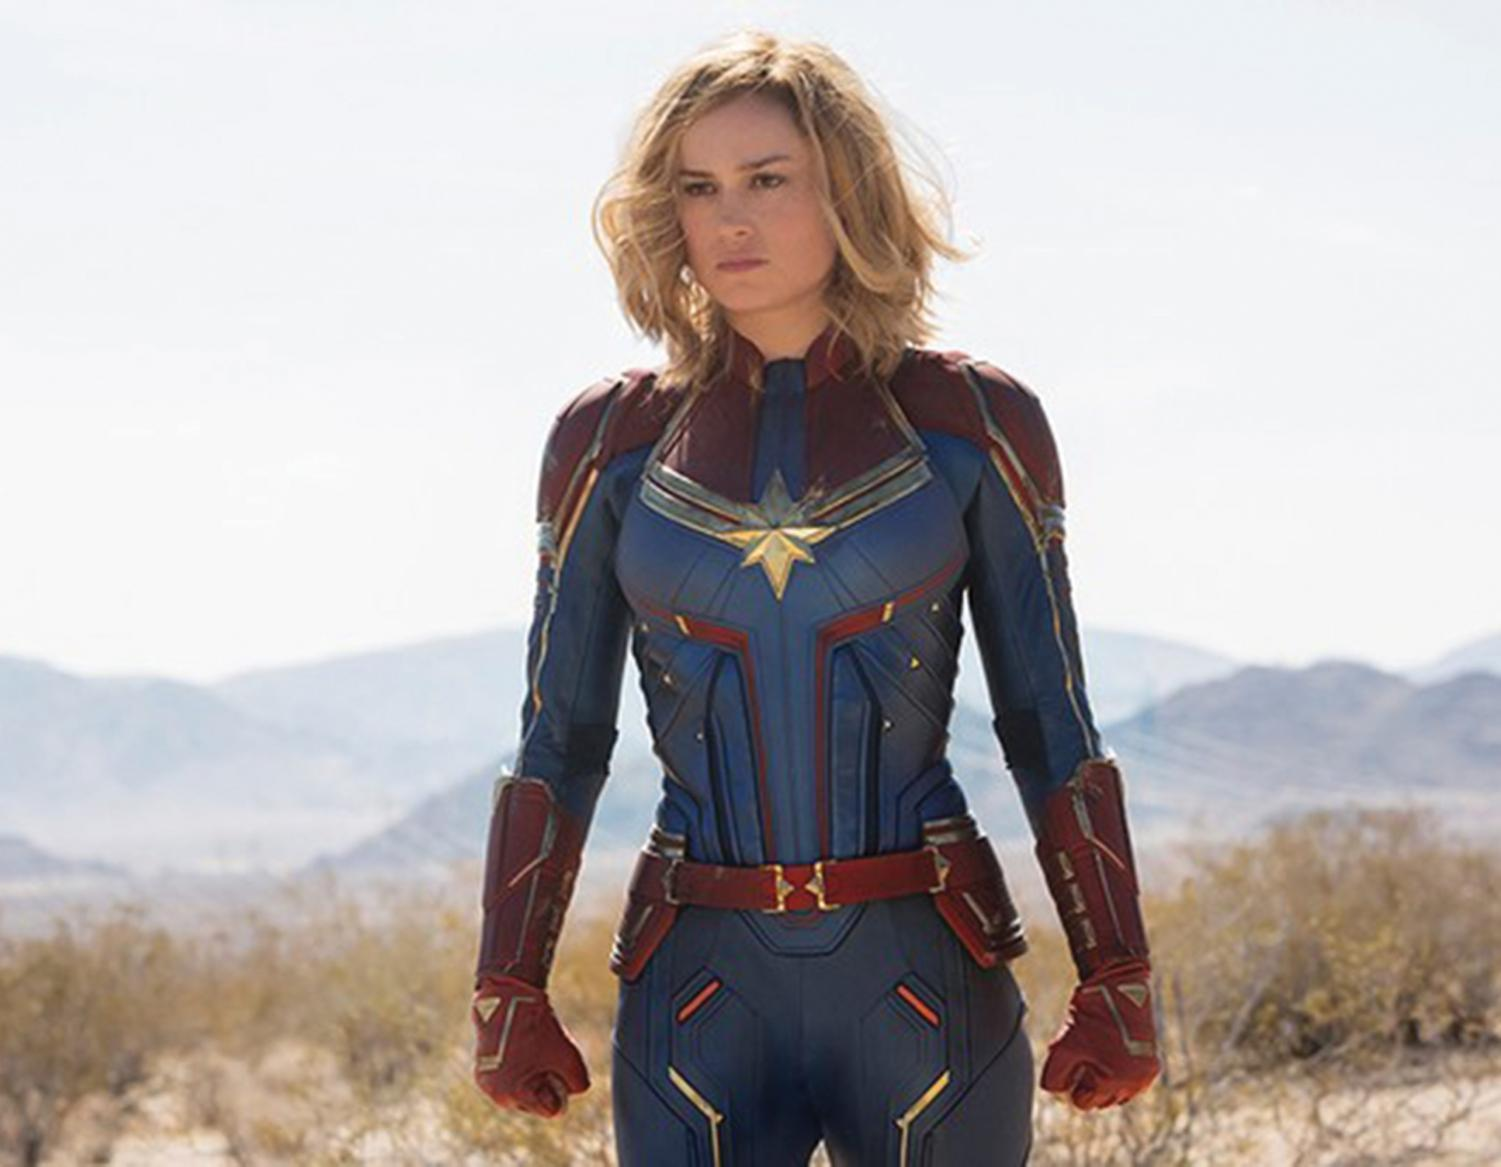 "Brie Larson stars as 'Captain Marvel"" in the 21st installment in the Marvel Cinematic Universe. Directed by filmmaking duo Anna Boden and Ryan Fleck, the film received a 79 percent Rotten Tomatoes rating."